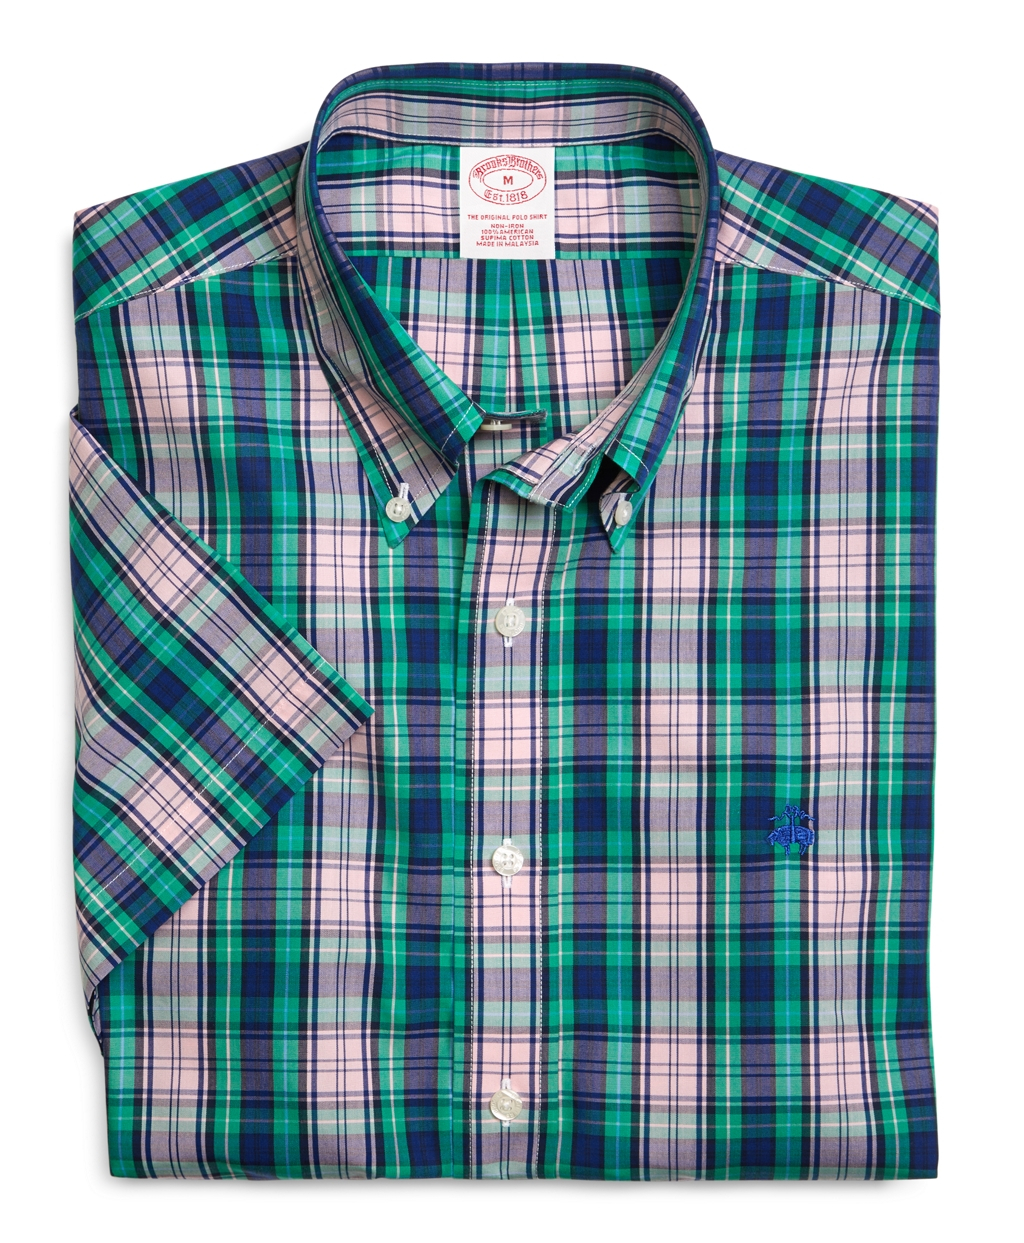 Brooks brothers supima cotton non iron regular fit large for Brooks brothers non iron shirts review